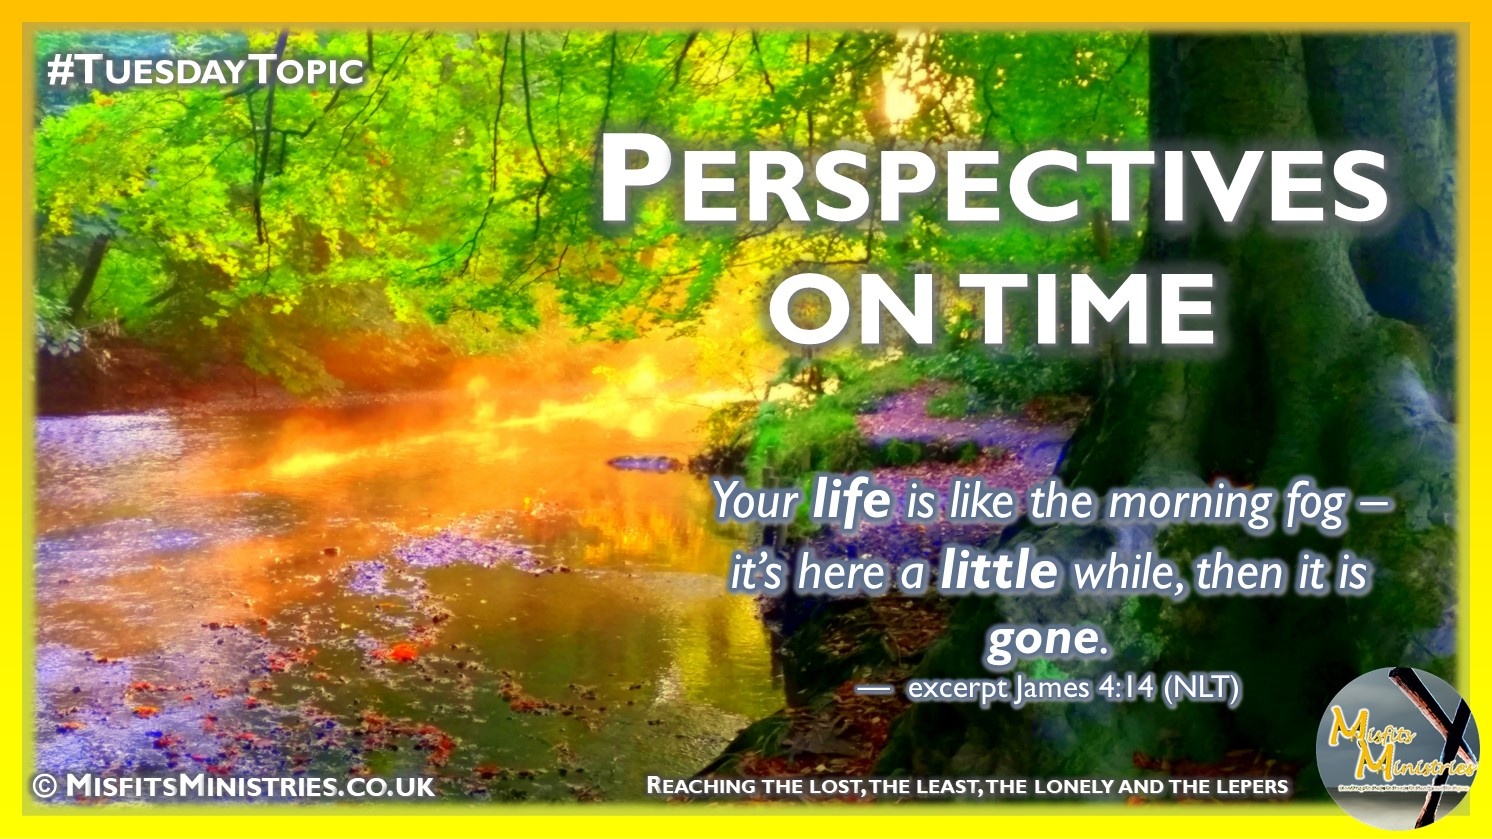 Tuesday Topic 2021wk37 - Perspectives on time